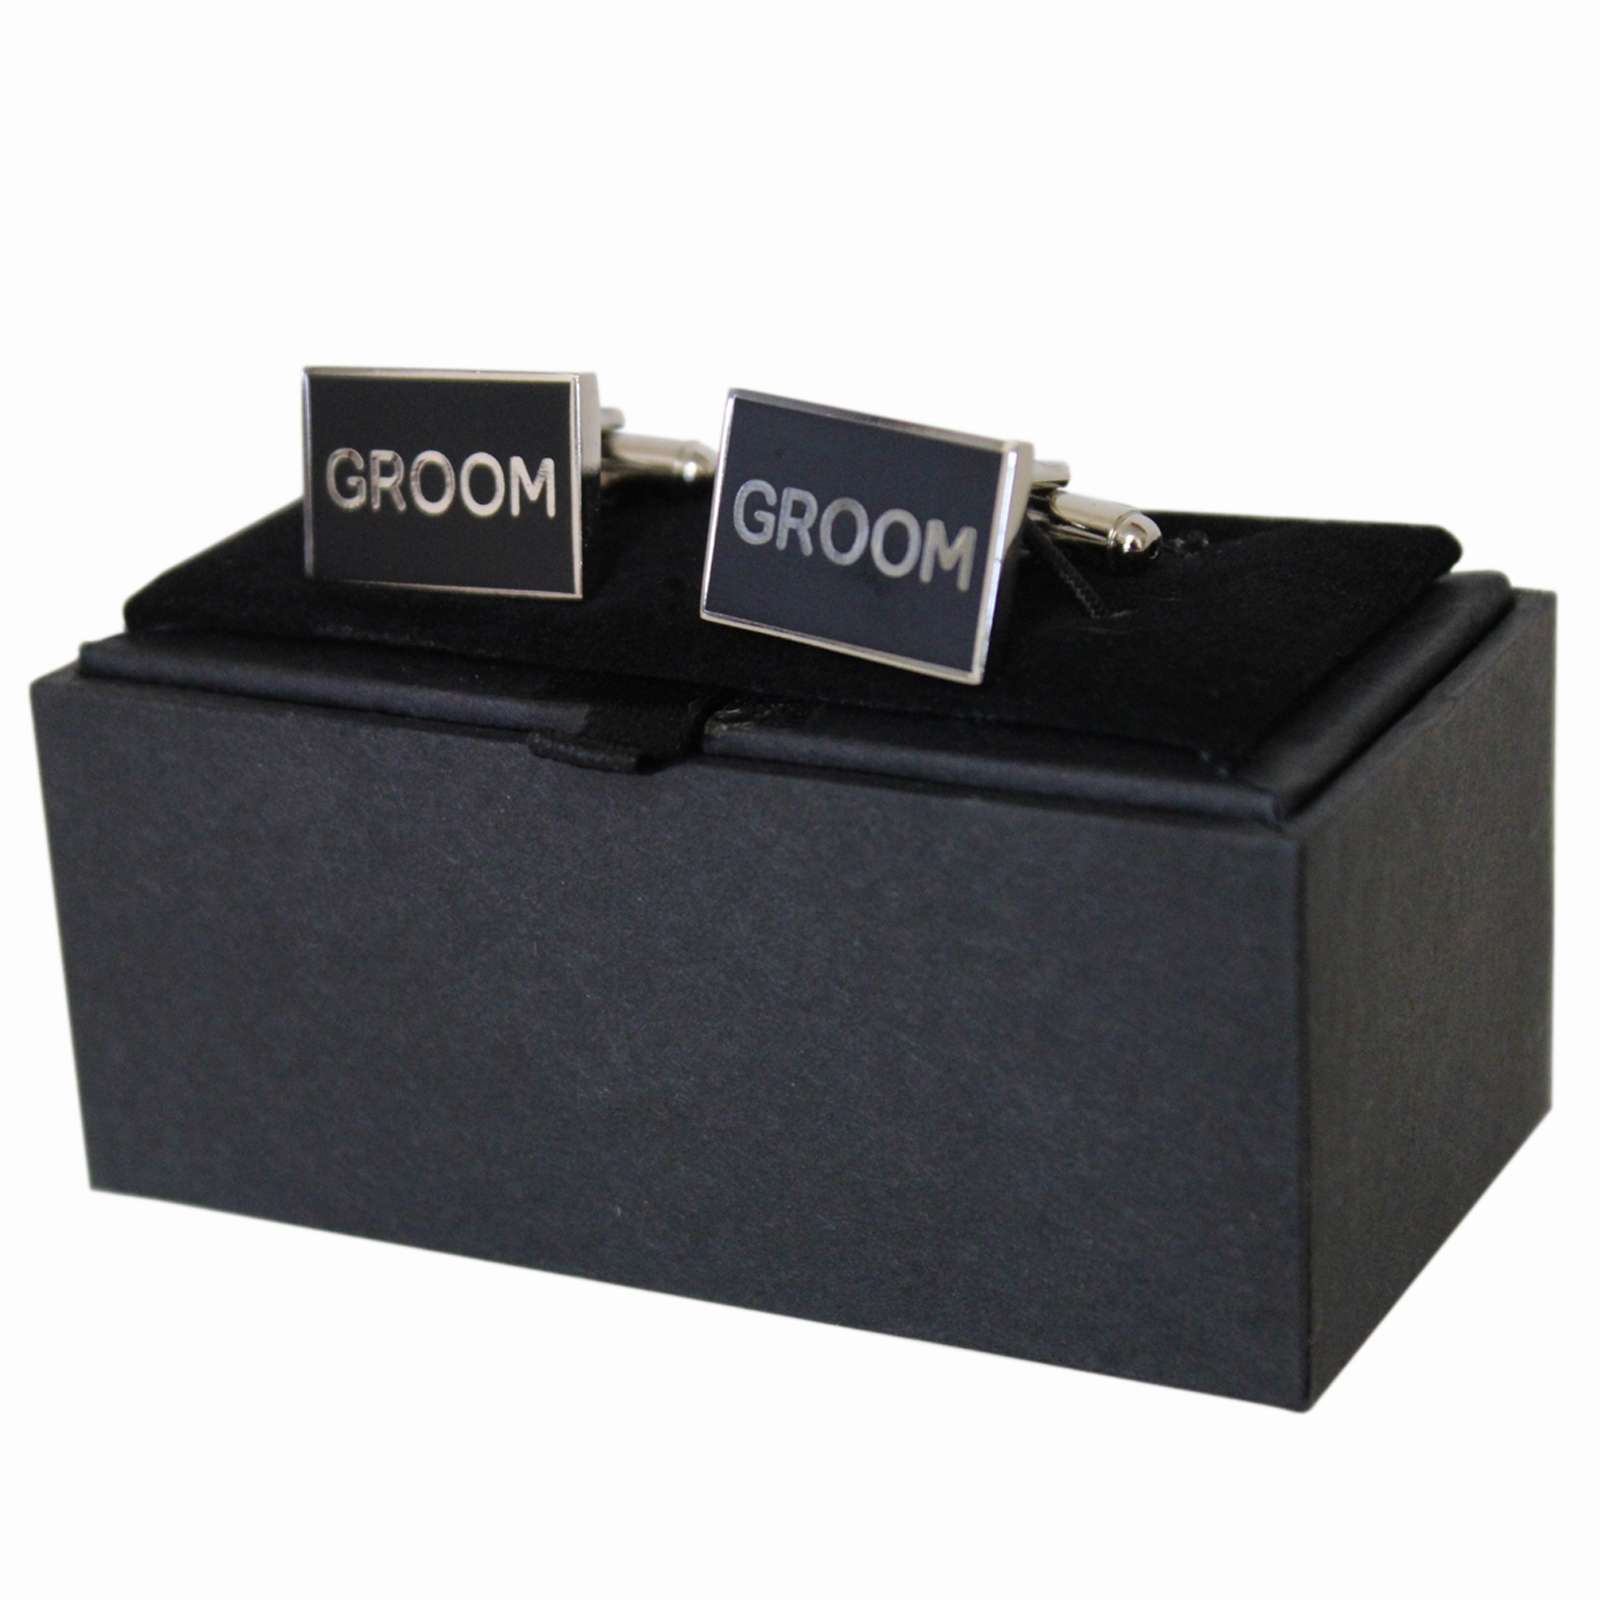 Polished Pewter Rectangular Groom Design Cufflinks by The English Pewter Company